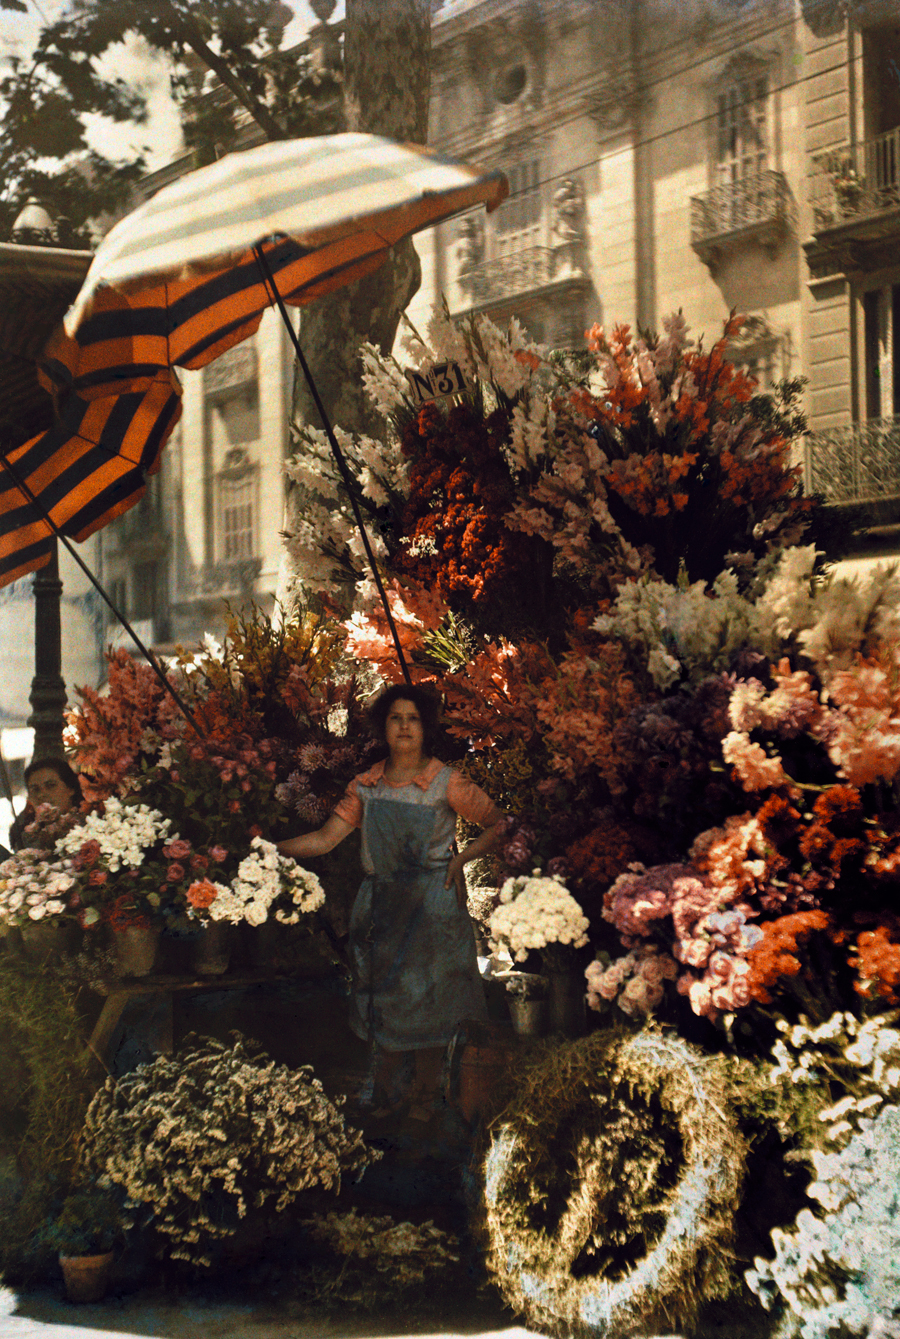 natgeofound: A woman stands in front of her flower stand on the Rambla in Barcelona, Spain, March 1929.Photograph by Jules Gervais Courtellemont, National Geographic